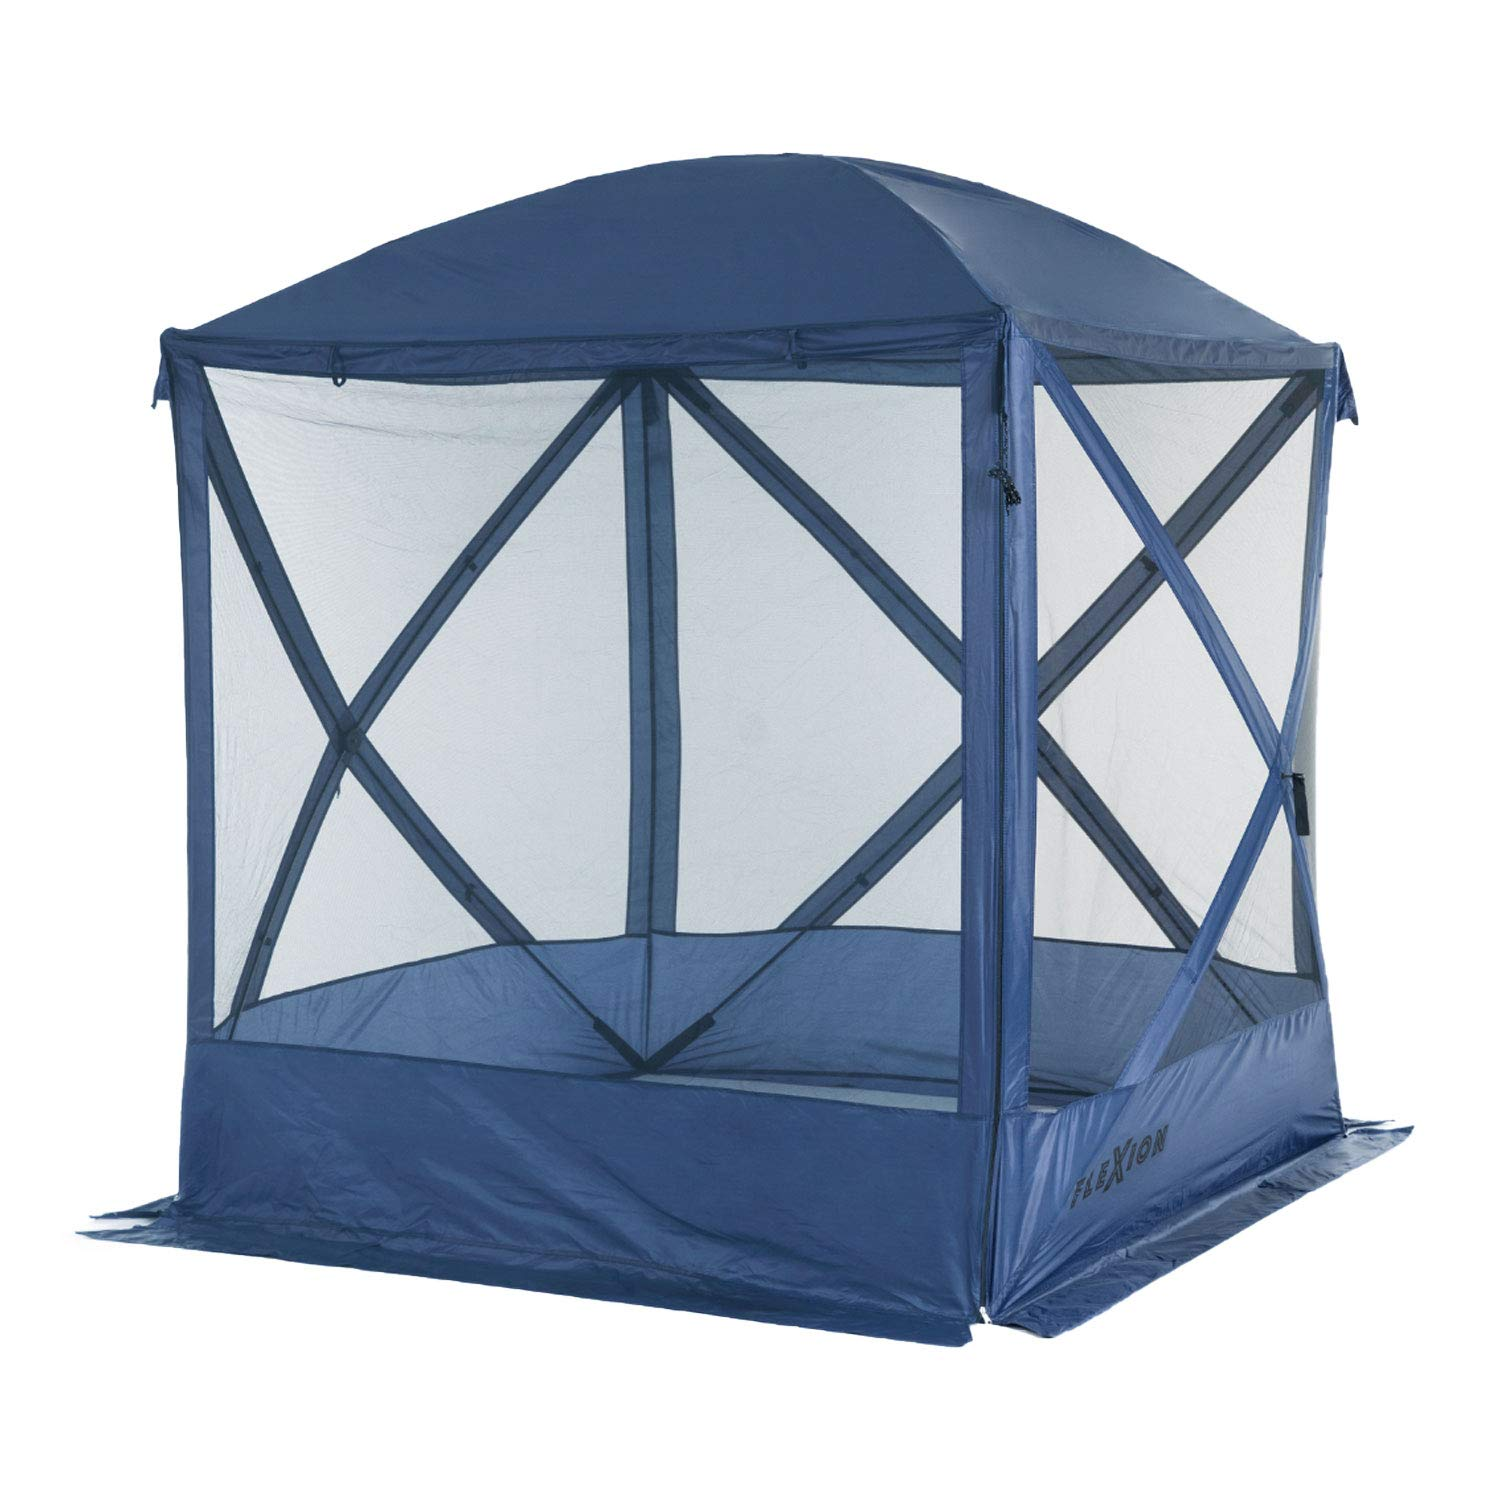 SlumberTrek 3036042LOW-VMI Flexion Lightweight Outdoor 4 Sided Pop Up Gazebo Canopy Shelter with Mesh Screen Netting and Carrying Bag, Navy Blue